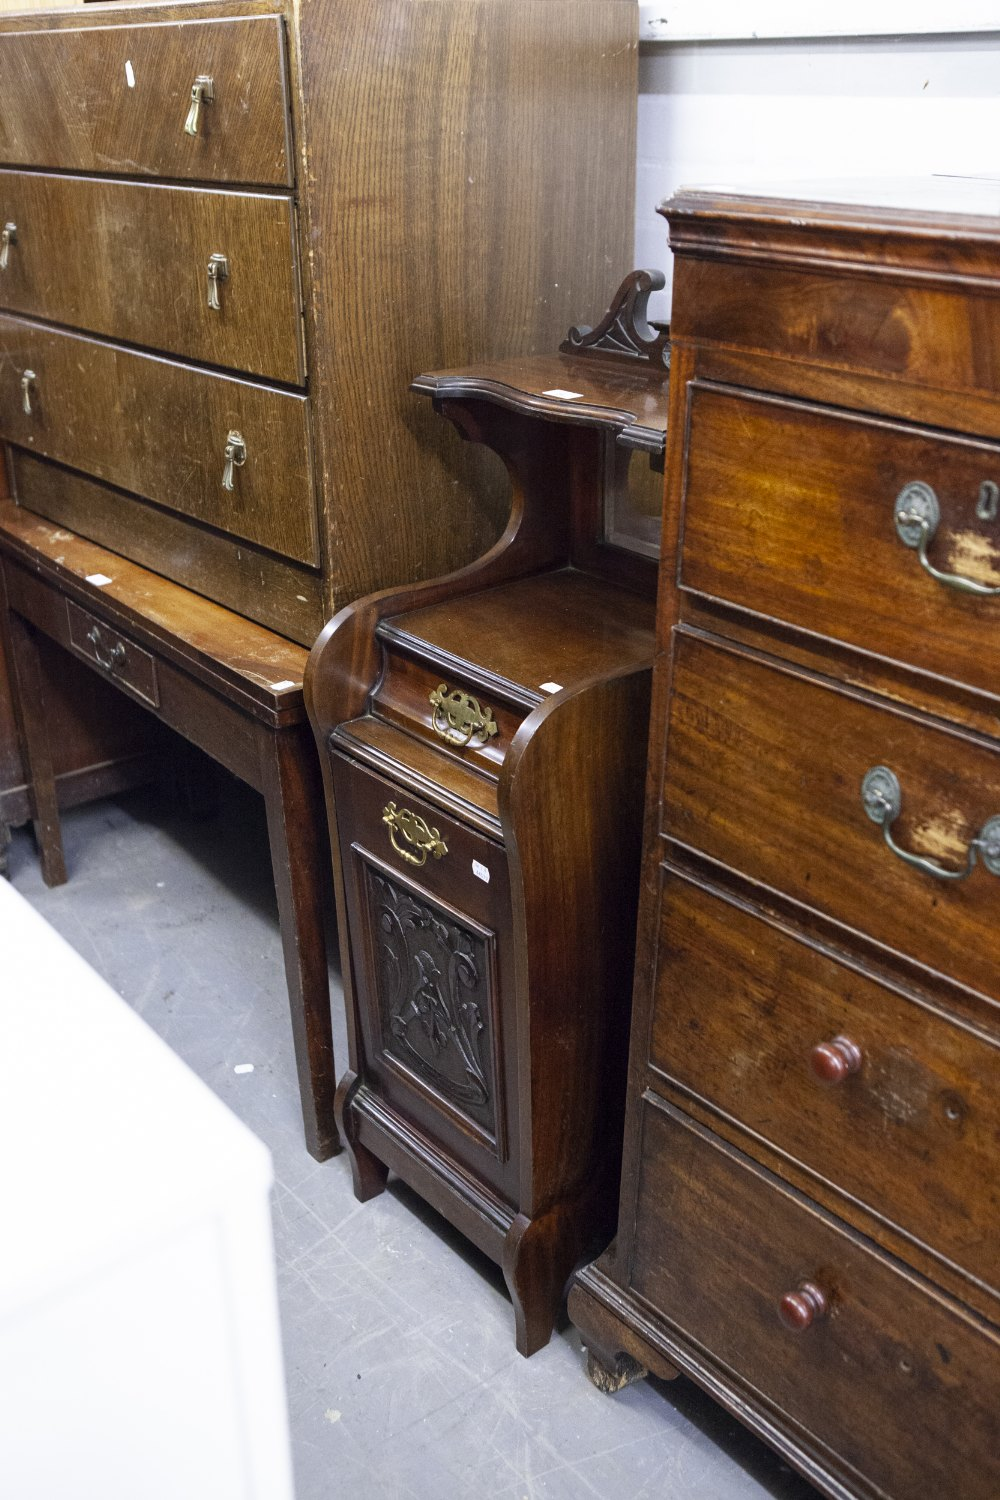 Lot 26 - EARLY TWENTIETH CENTURY FALL FRONT COAL PURDONIUM, WITH DRAWER AND MIRROR ABOVE